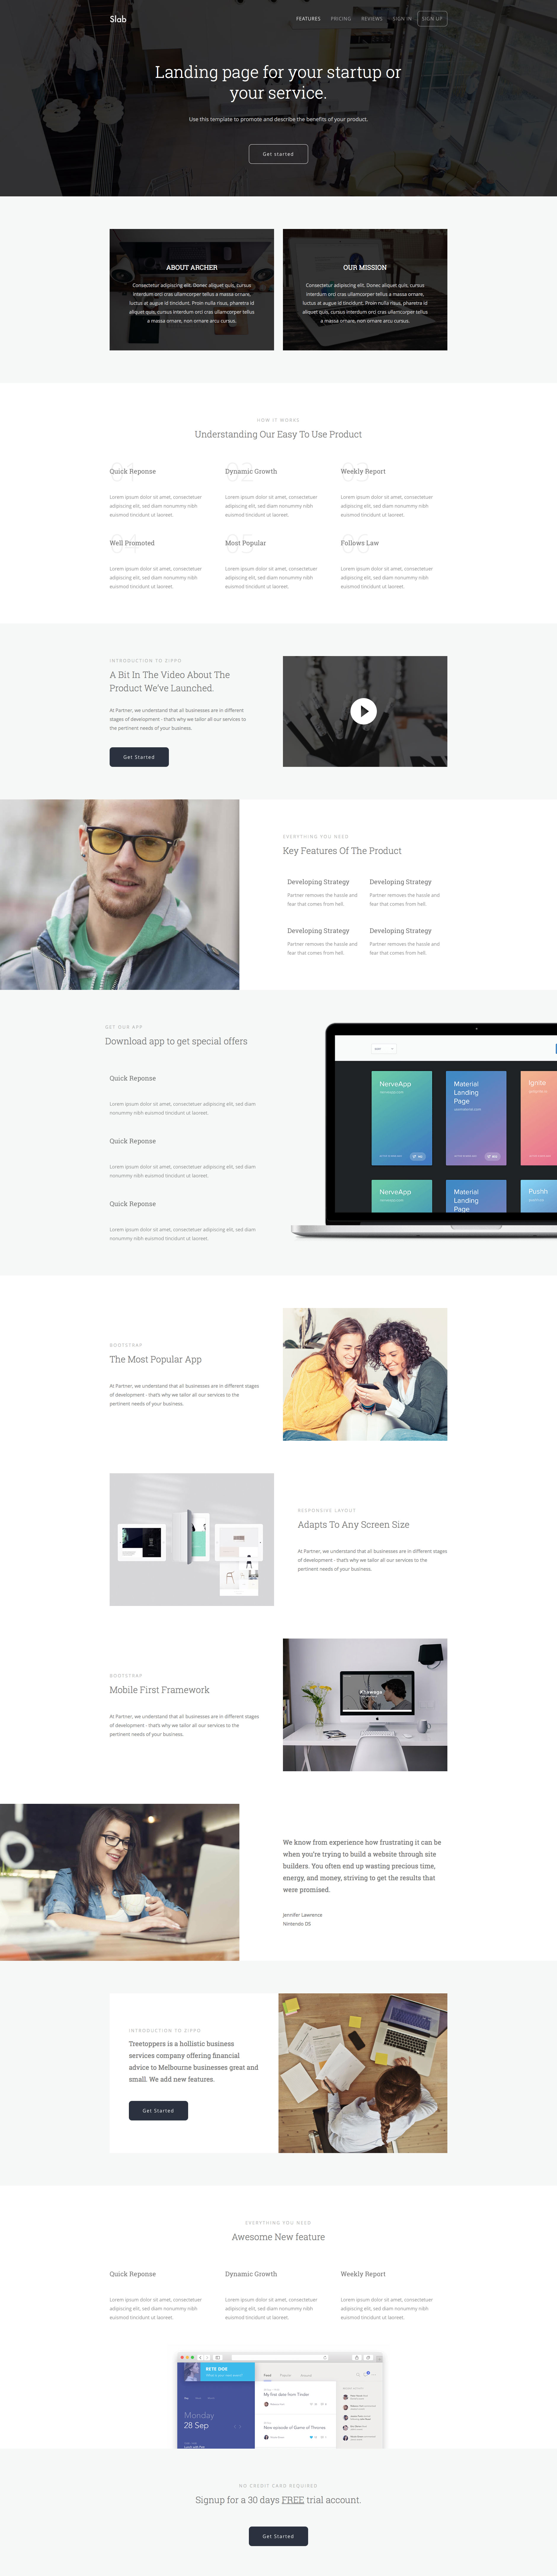 Slab is a minimalist free responsive multipurpose HTML5 and CSS3 template based on the popular Bootstrap 3 framework. It features  740+ premium icons, working contact form, video section, pricing and team section. Slab is suitable for business related websites.